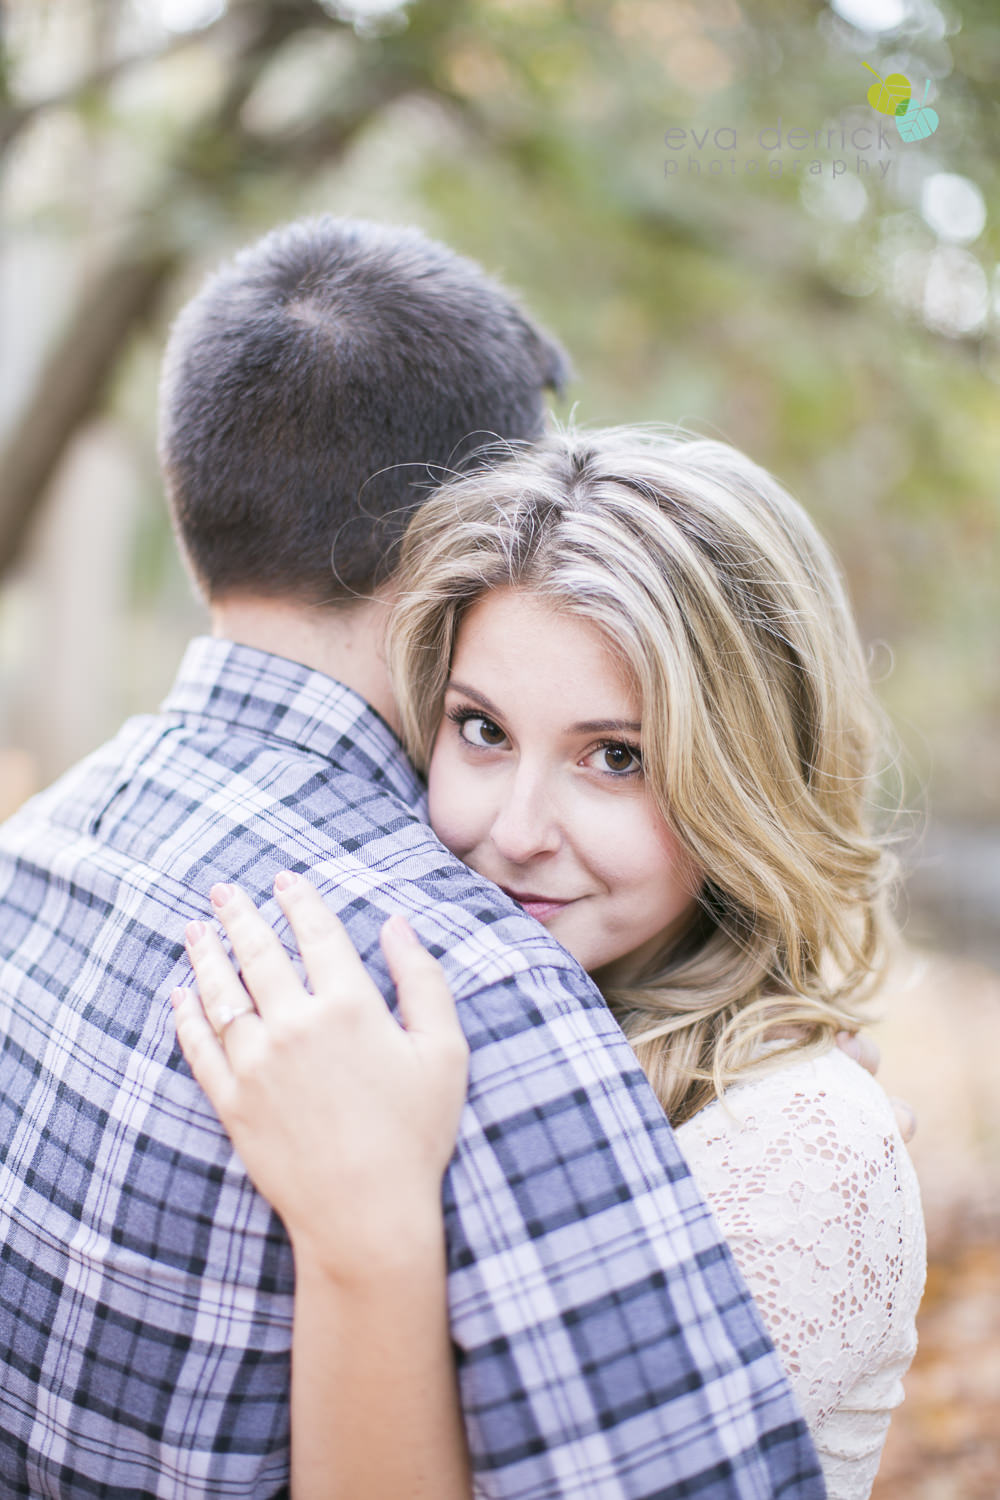 Albion-Hills-Photographer-Engagement-Session-Alanna-Matt-photography-by-Eva-Derrick-Photography-005.JPG